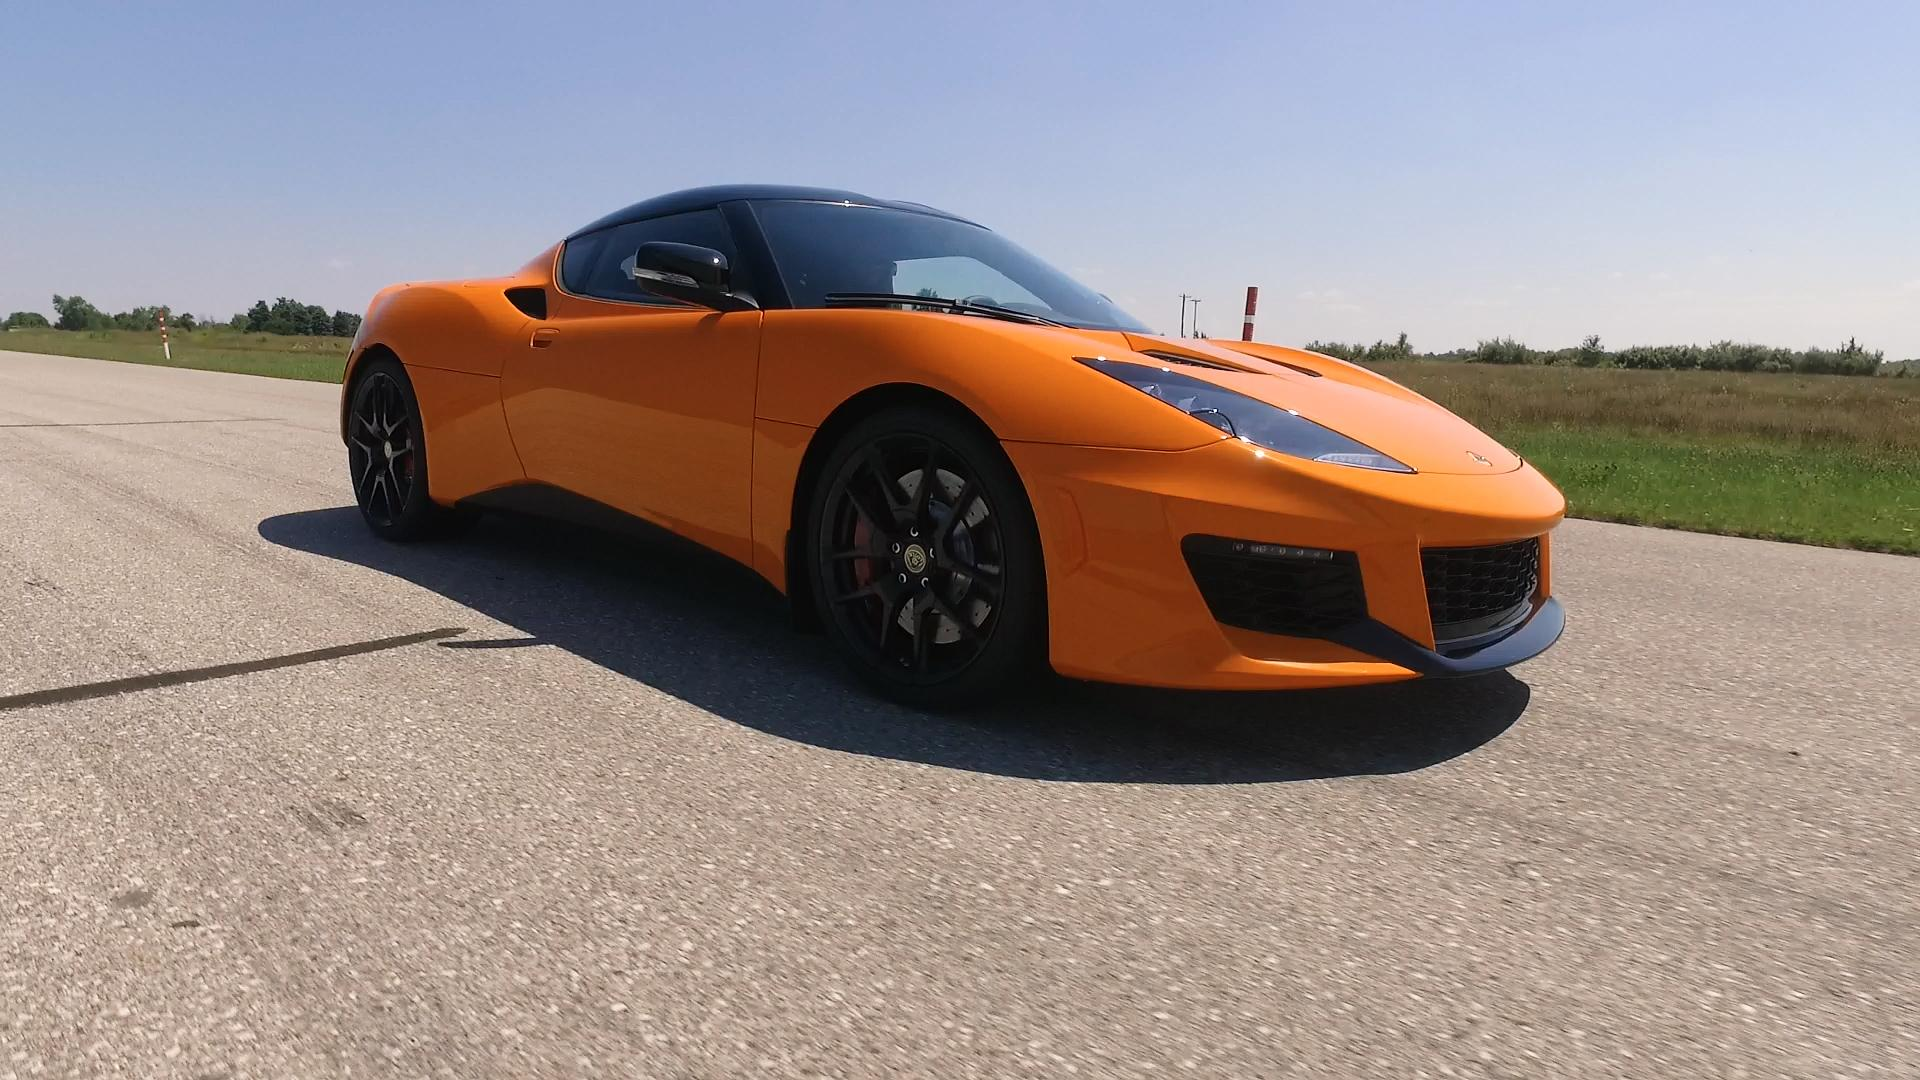 Lotus CEO Says Brand Will Have New Sports Cars SUV Autoblog - Current sports cars